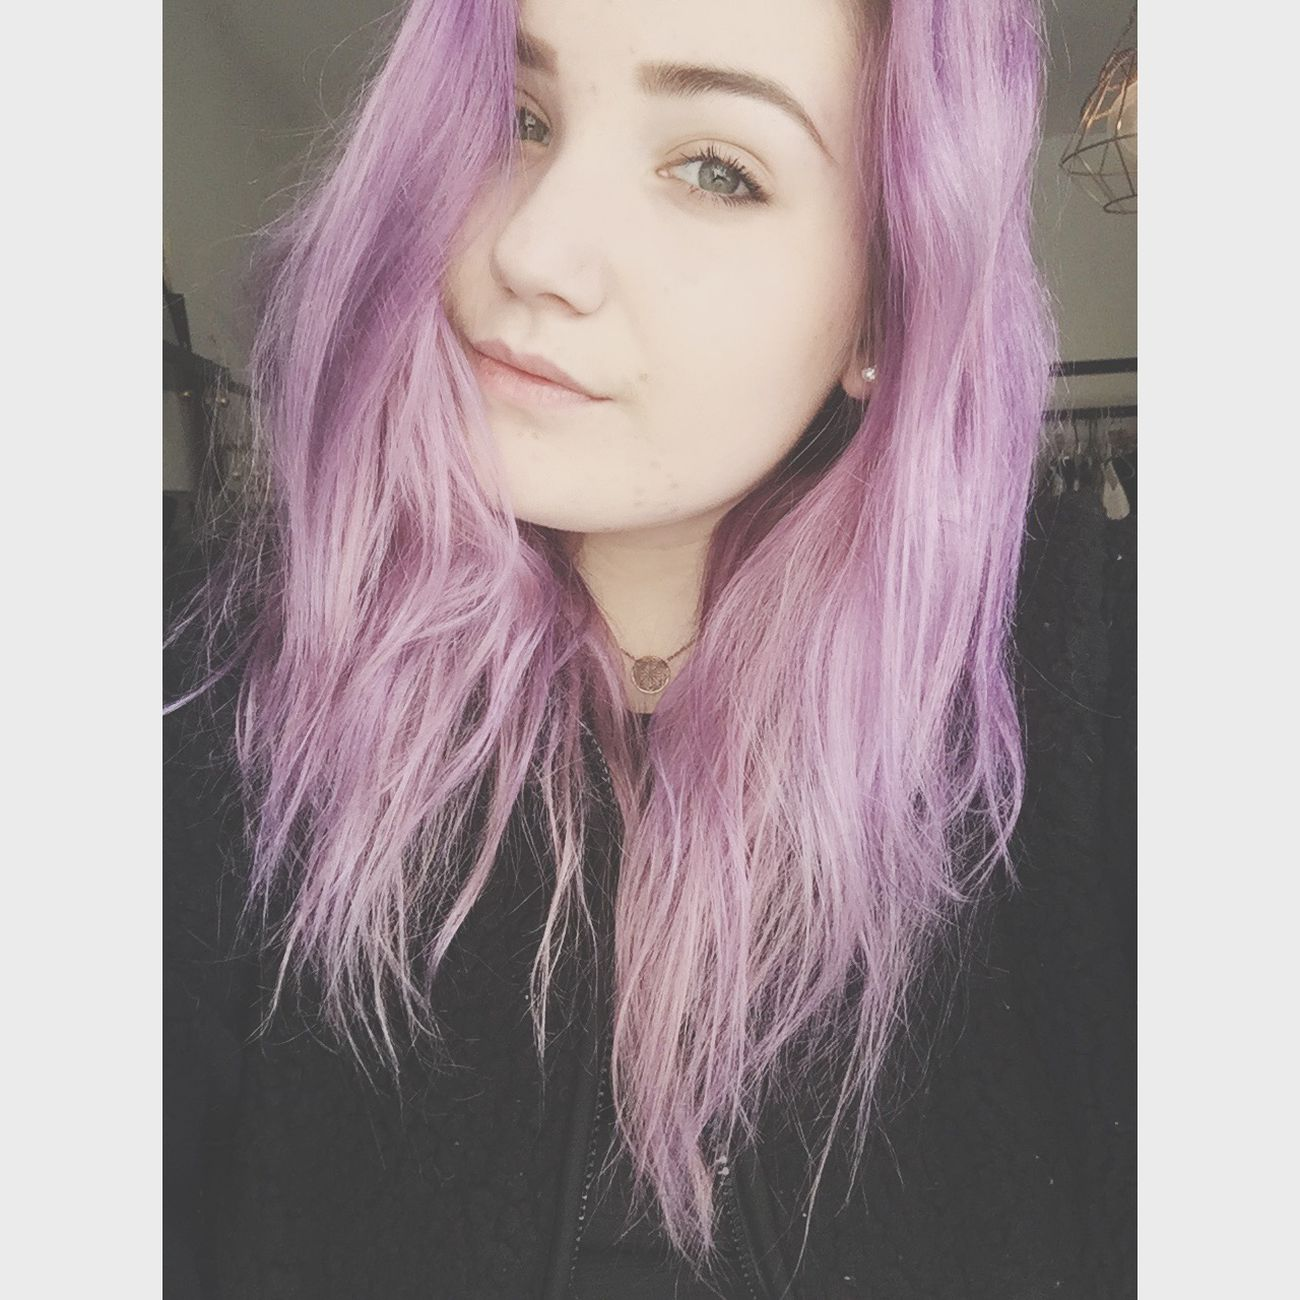 Check This Out That's Me Hanging Out Hello World Purple Hair Purple Hair Dont Care Sweden Swedish Girl Taking Photos Enjoying Life